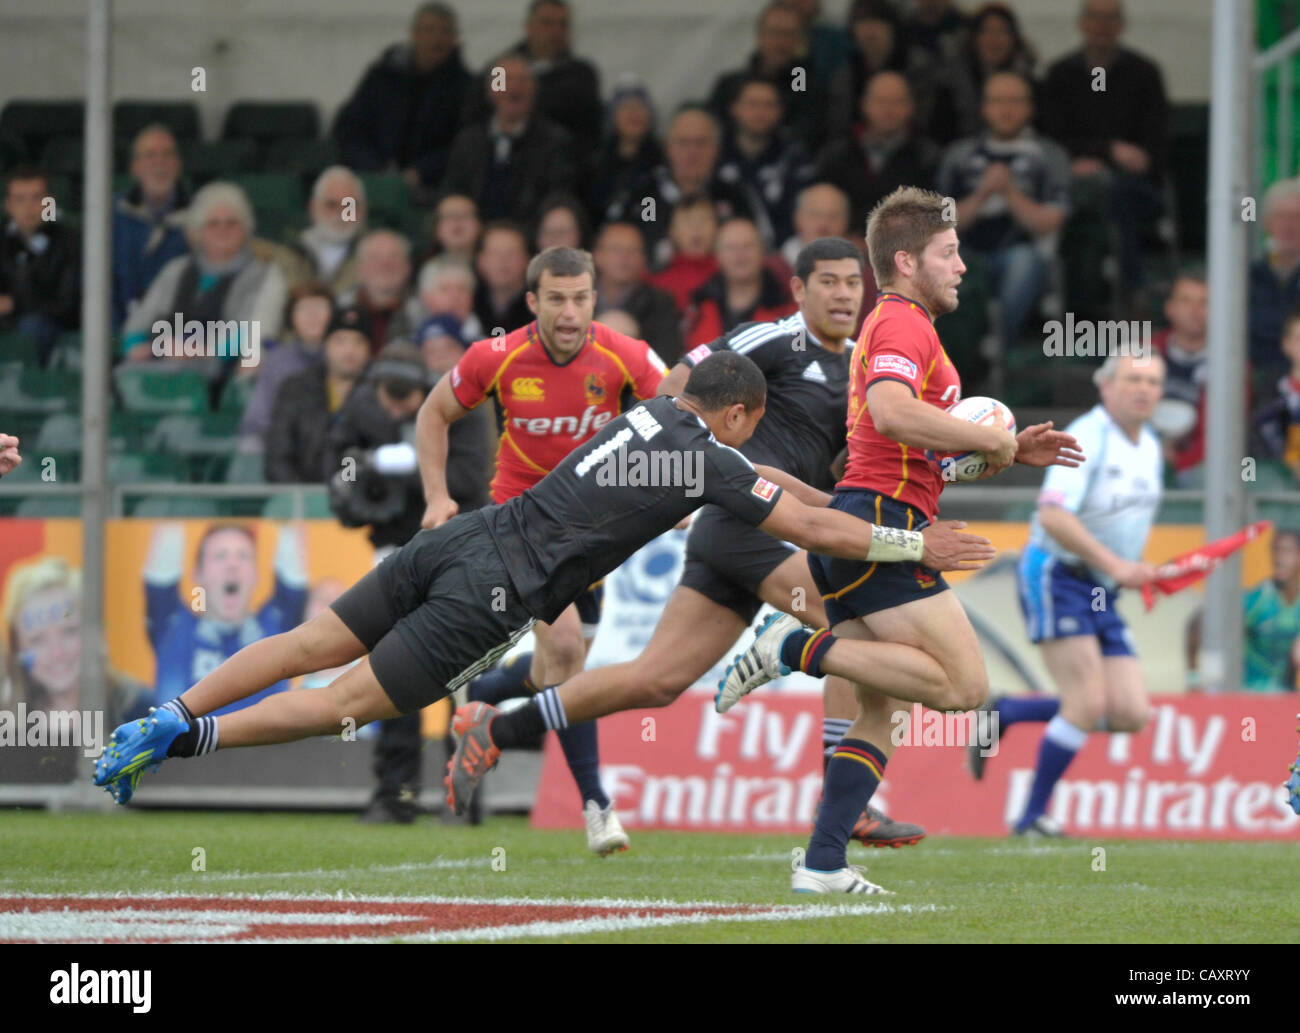 05.05.2012 Glasgow, Scotland. HSBC Sevens World Series. Ardie Savea put in a tackle during the game between New - Stock Image